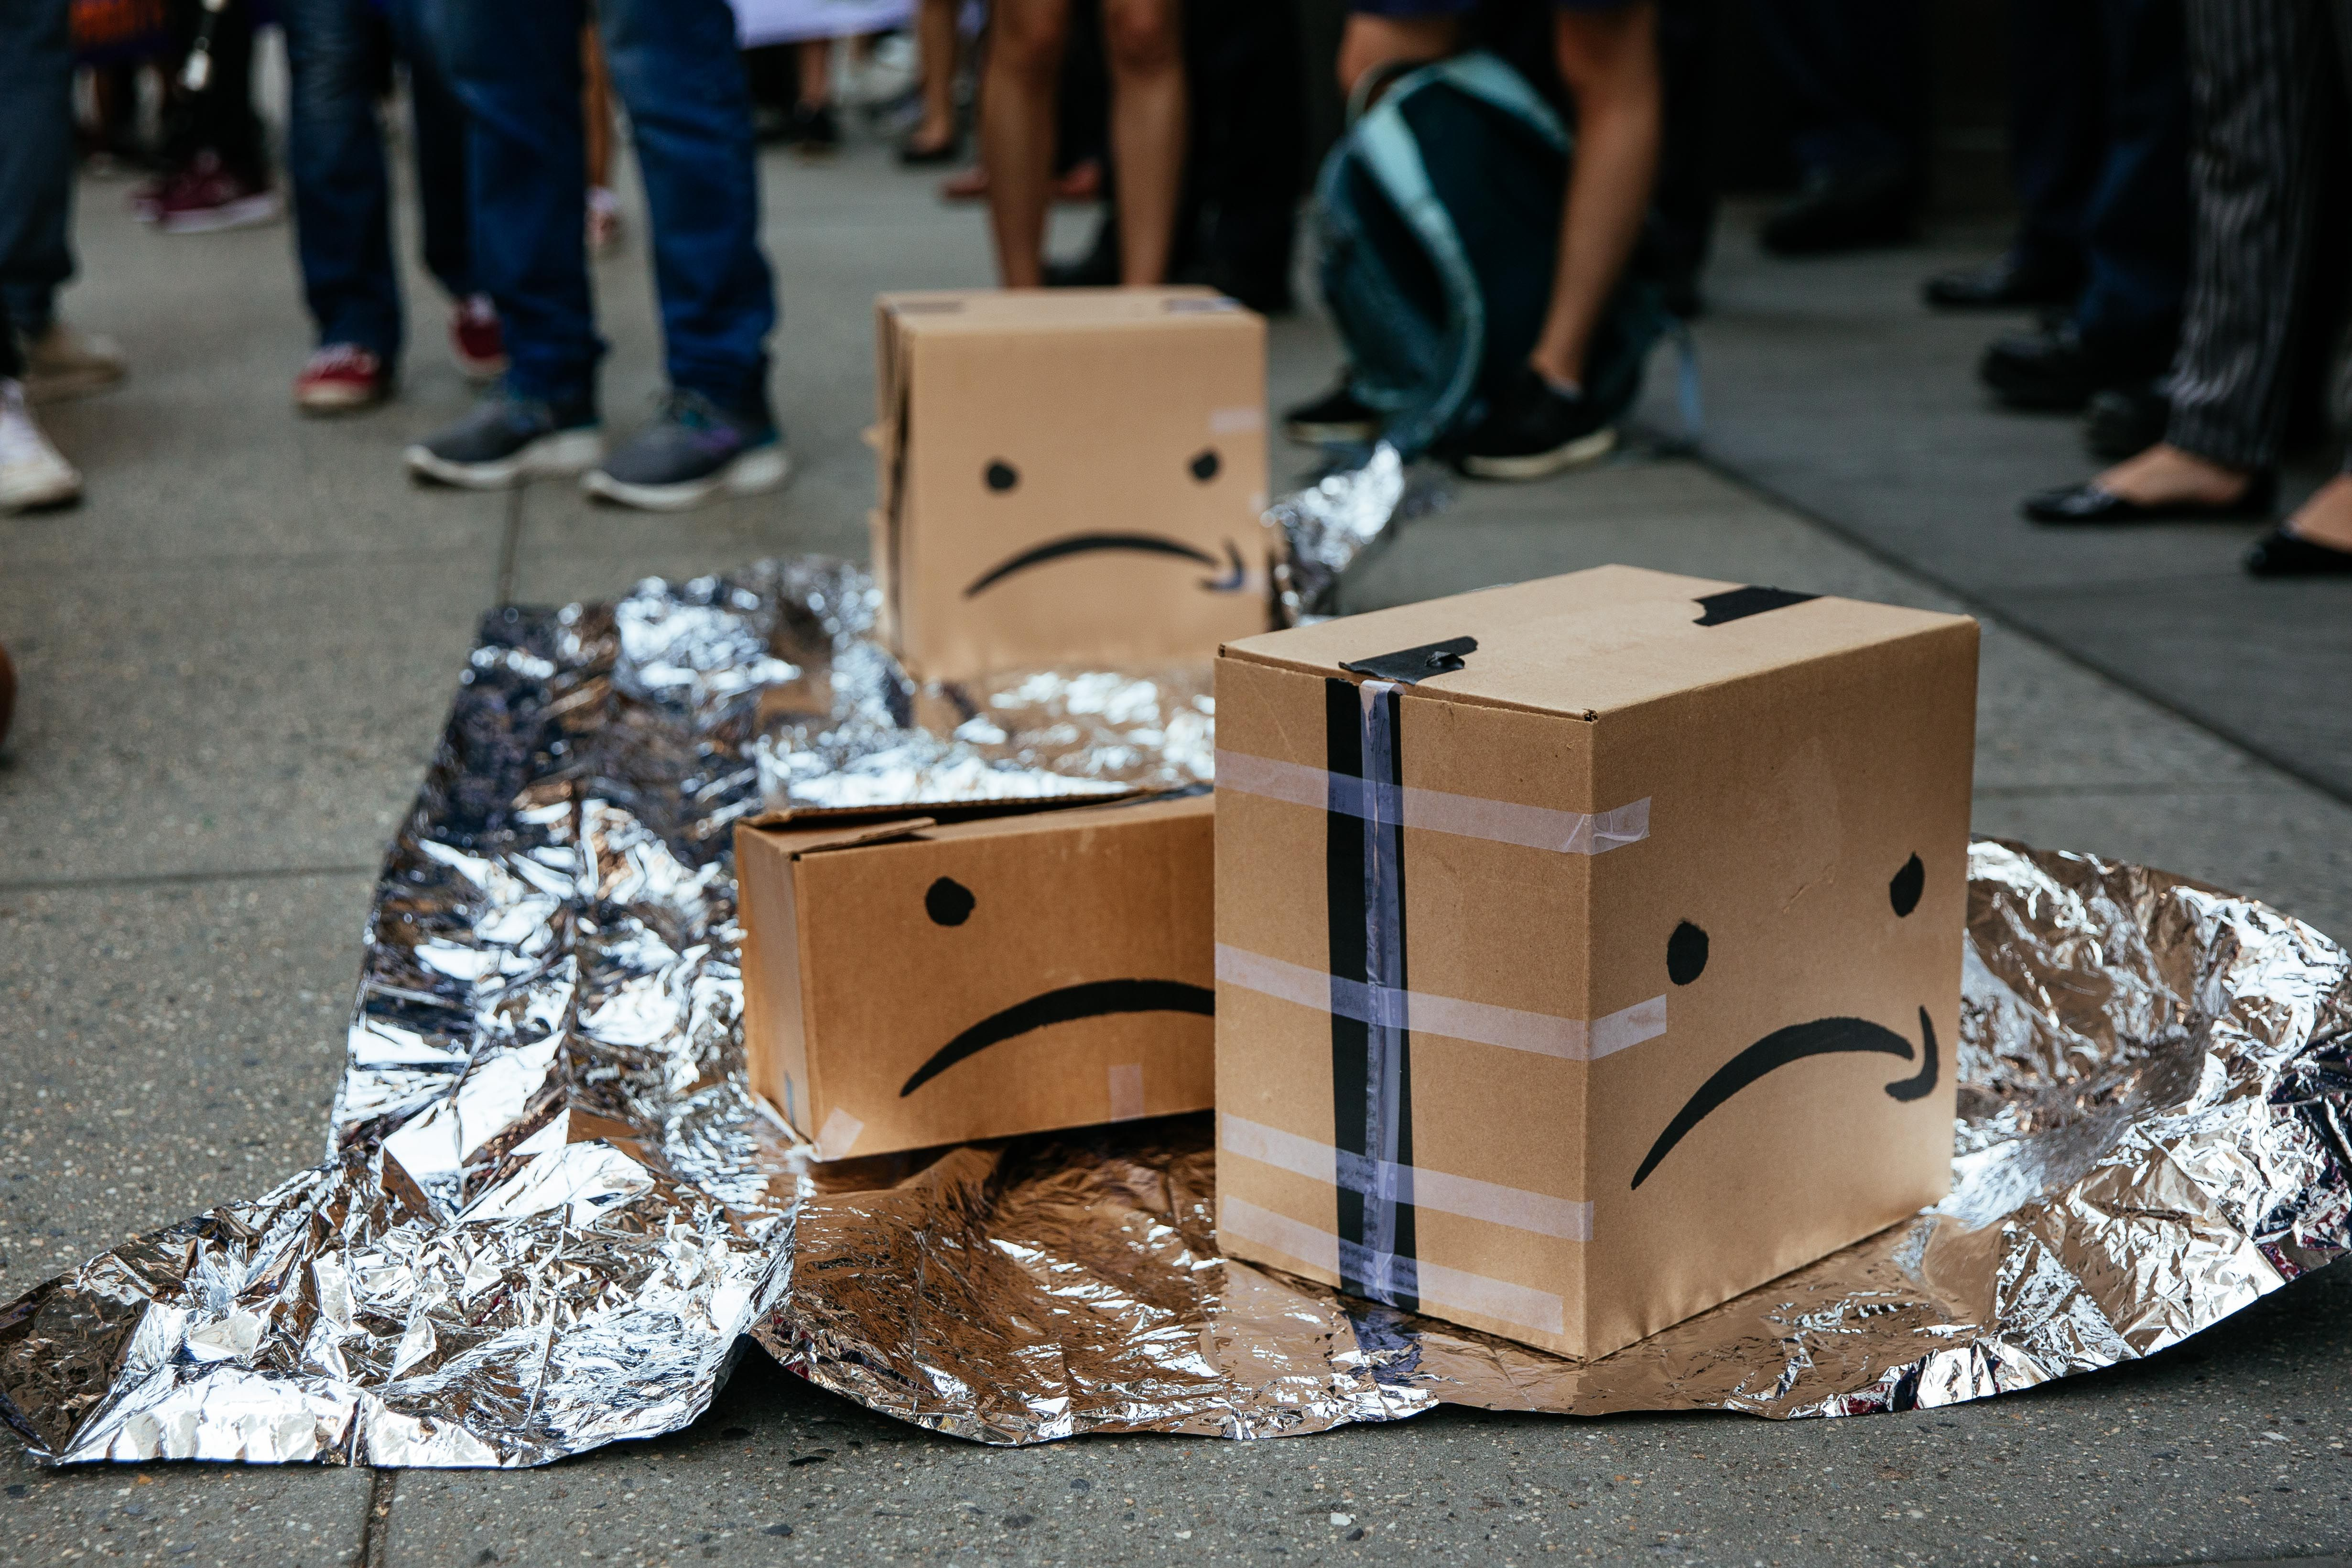 A New Report Said Amazon's Third-Party Sellers Are Delivering Expired And Spoiled Food